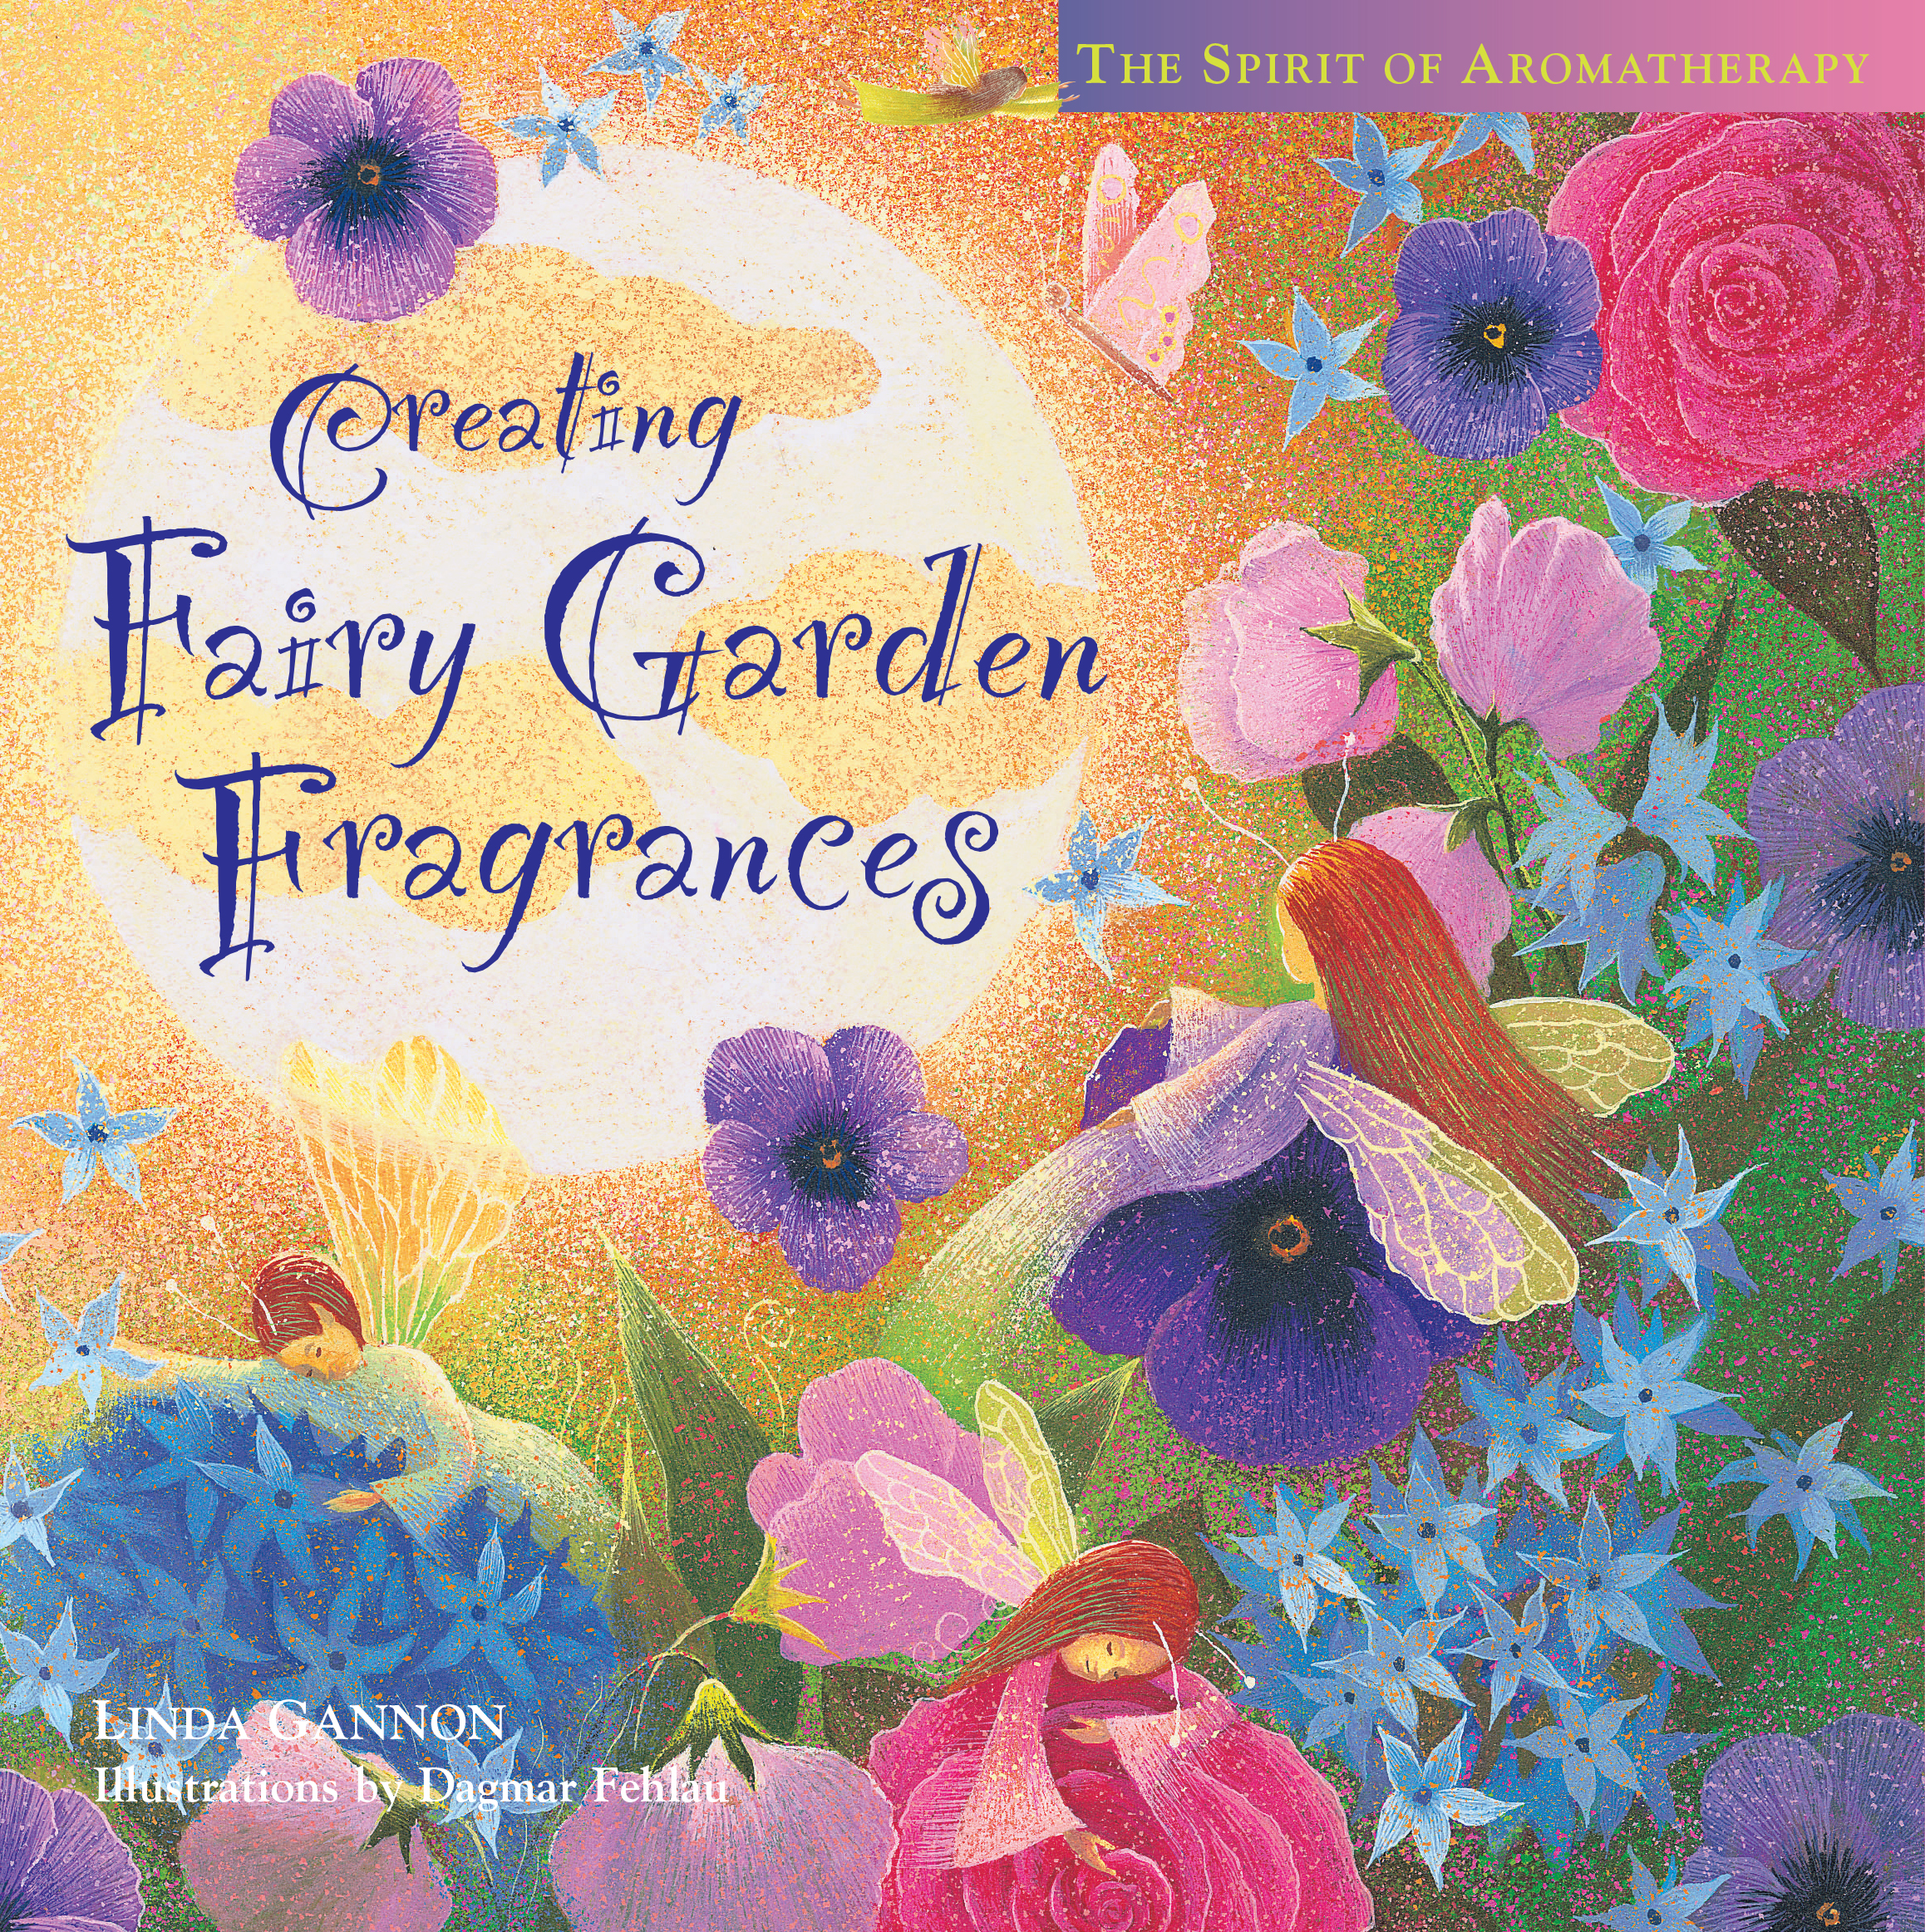 Creating Fairy Garden Fragrances The Spirit of Aromatherapy - Linda Gannon